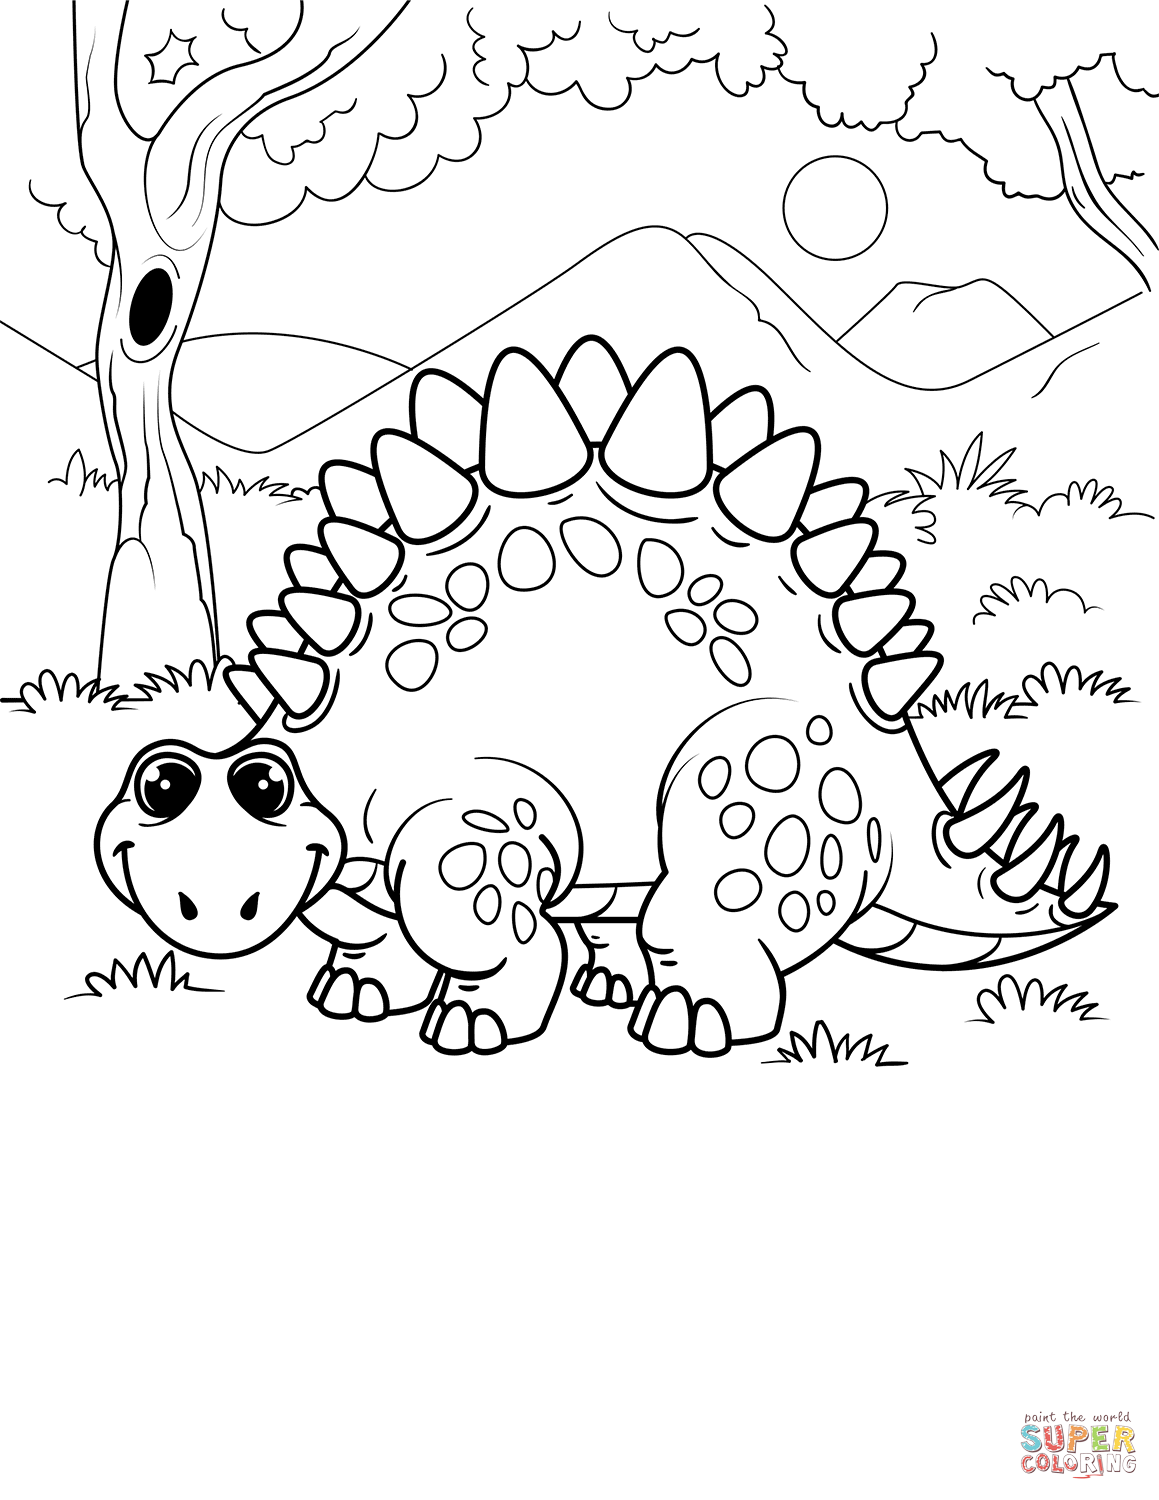 stegosaurus pictures to color stegosaurus coloring page free printable coloring pages color pictures to stegosaurus